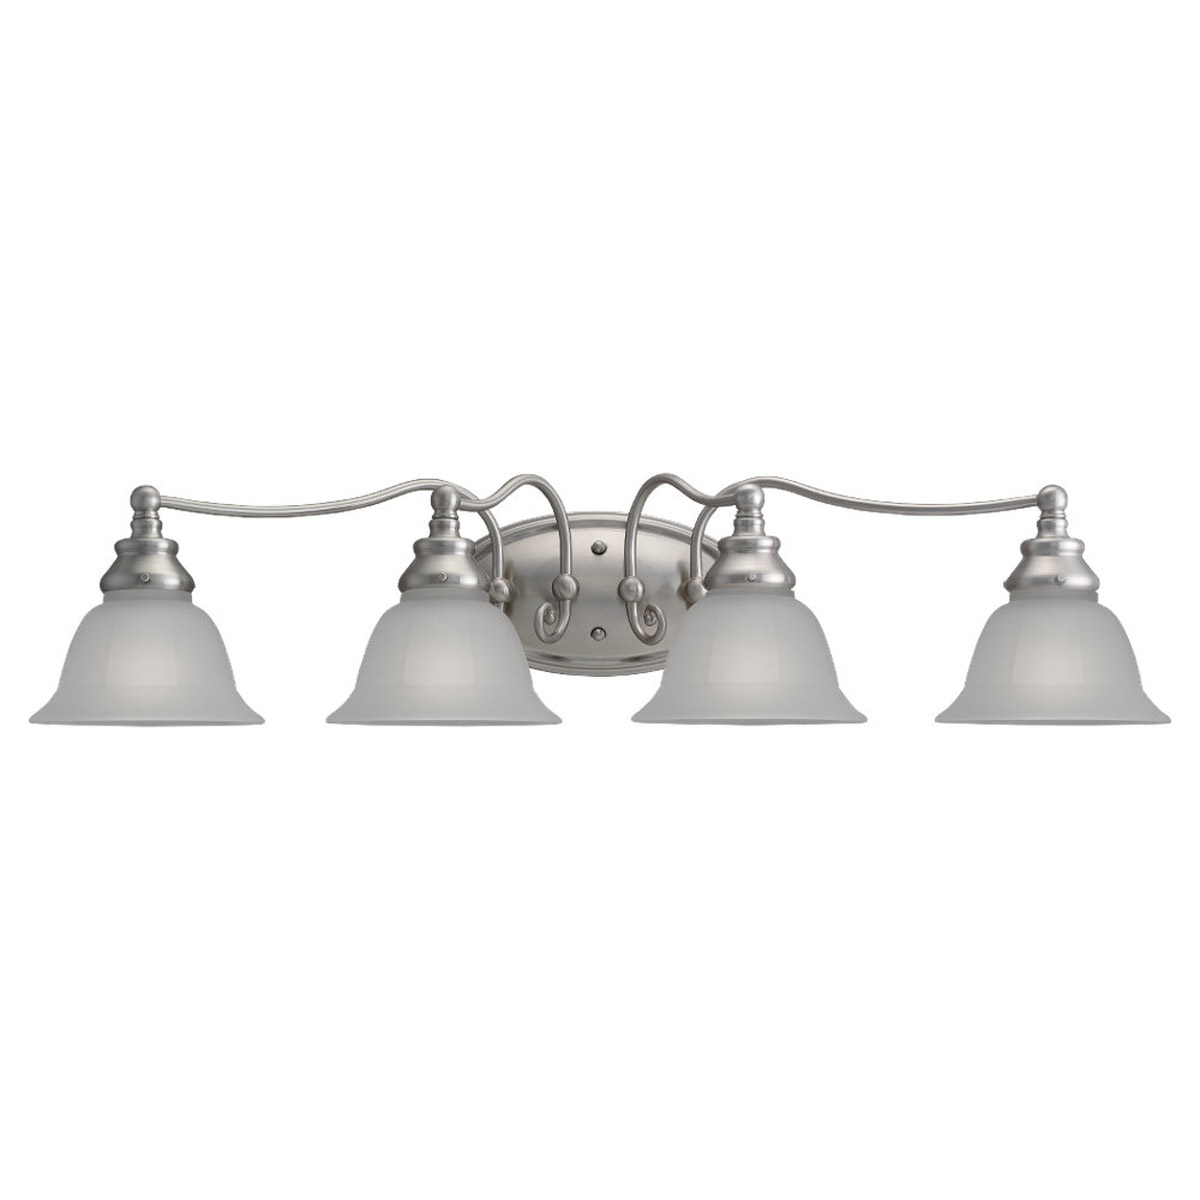 Sea Gull Lighting Canterbury 4 Light Bath Vanity in Brushed Nickel 49653BLE-962